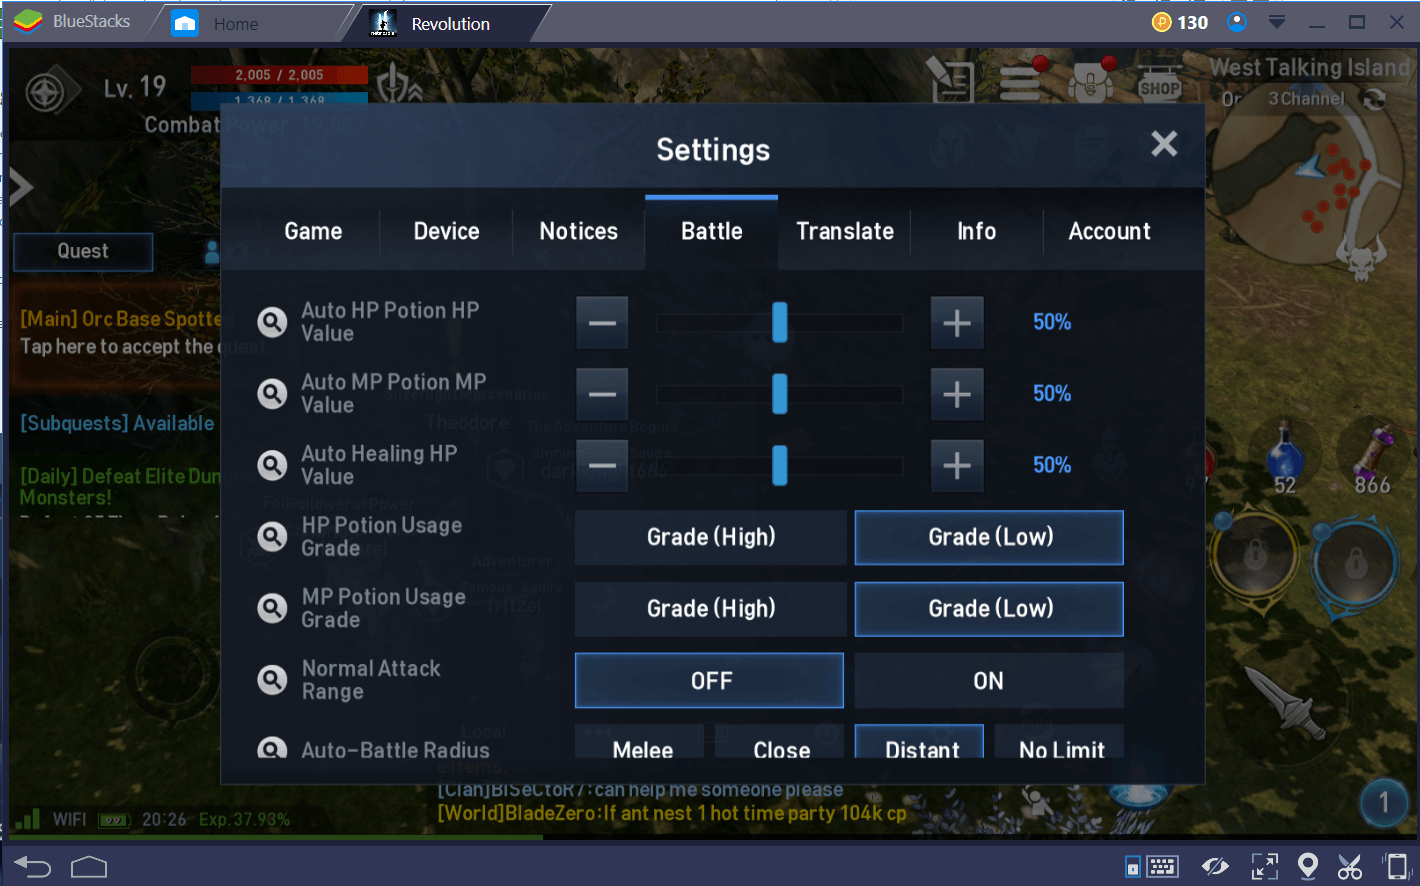 Lineage 2 Setting Tr